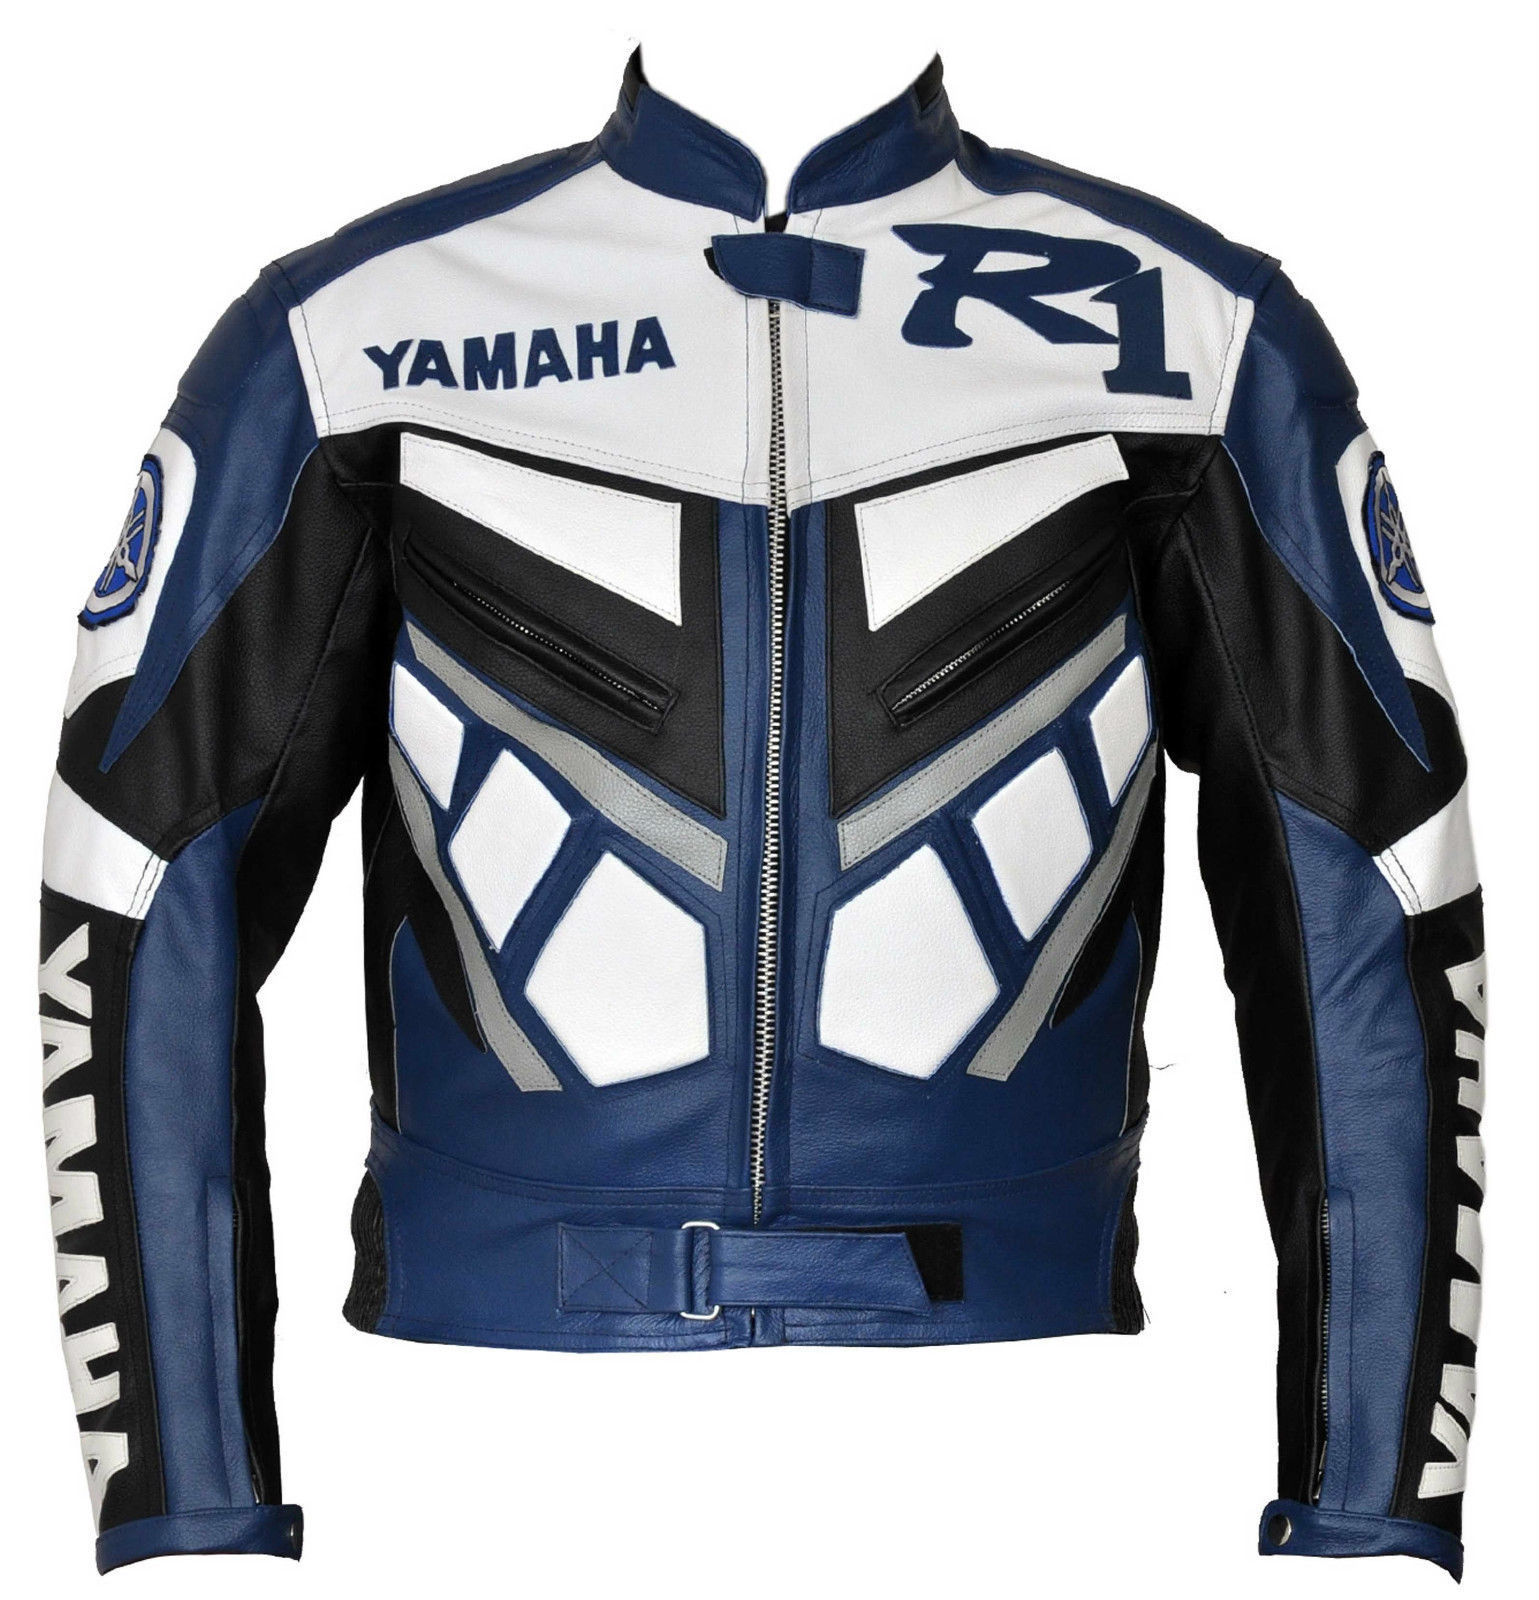 Yamaha Star Leather Motorcycle Jackets